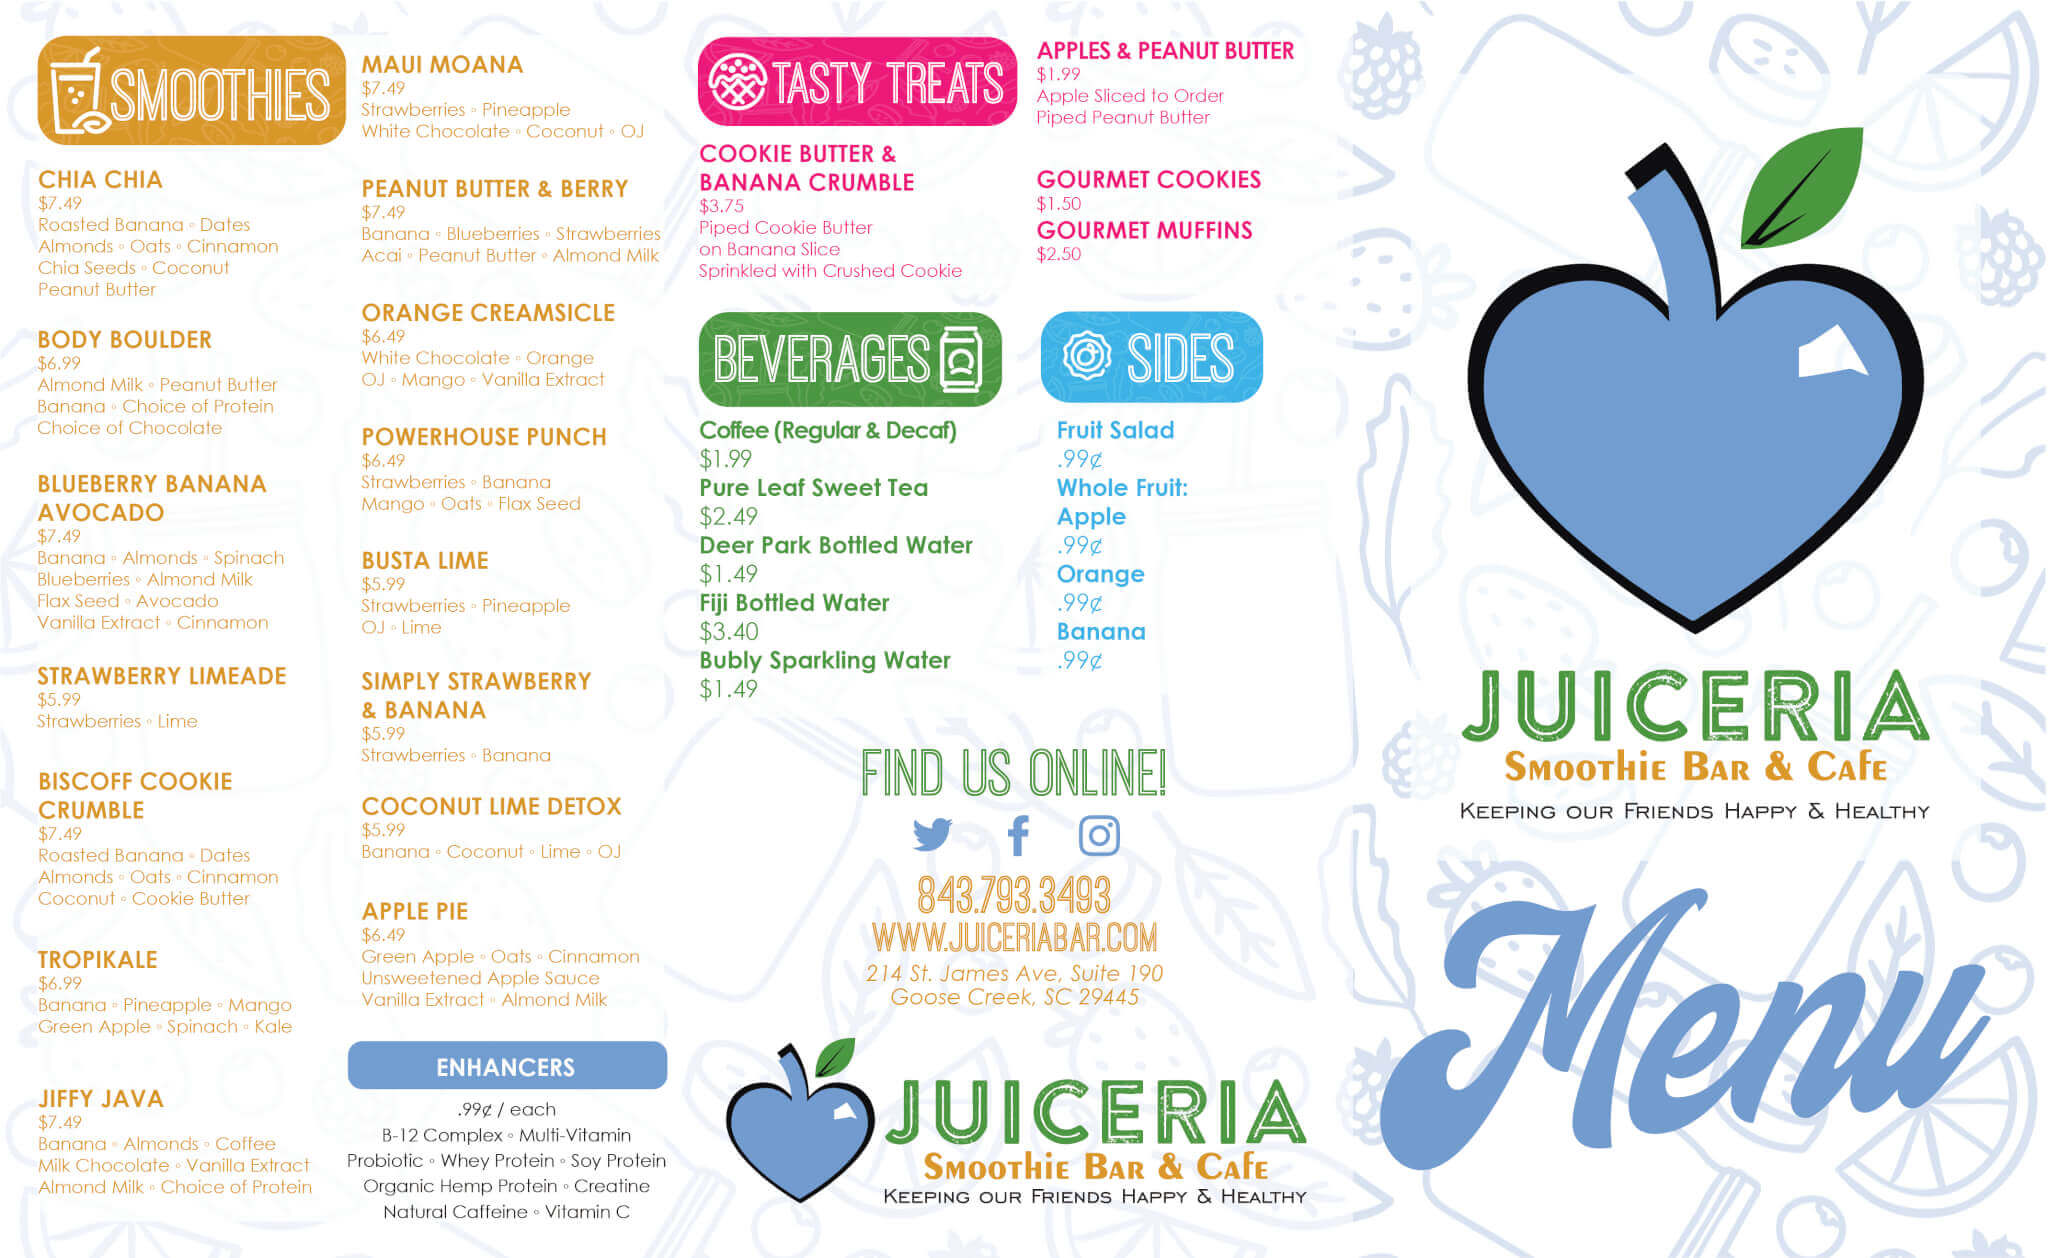 Juiceria Smoothie Bar Menu